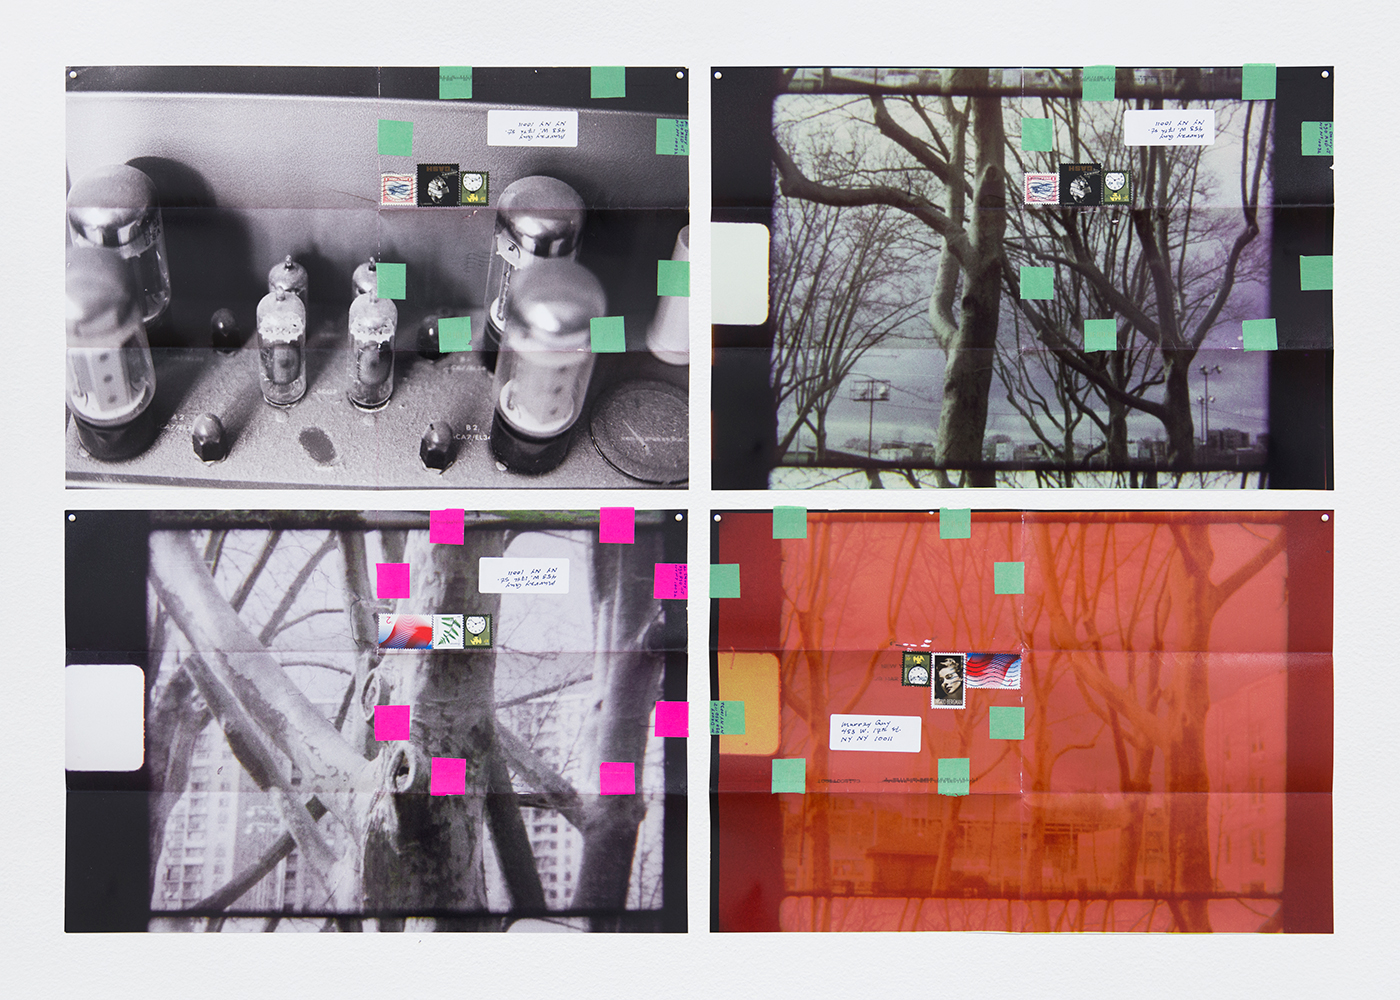 """Moyra Davey, """"Dust, Amp, Trees"""" (2016), 4 c-prints, tape, postage, ink, 12 x 18 inches each, 24 1/2 x 36 1/2 inches overall (all images courtesy the artist and Murray Guy, New York)"""